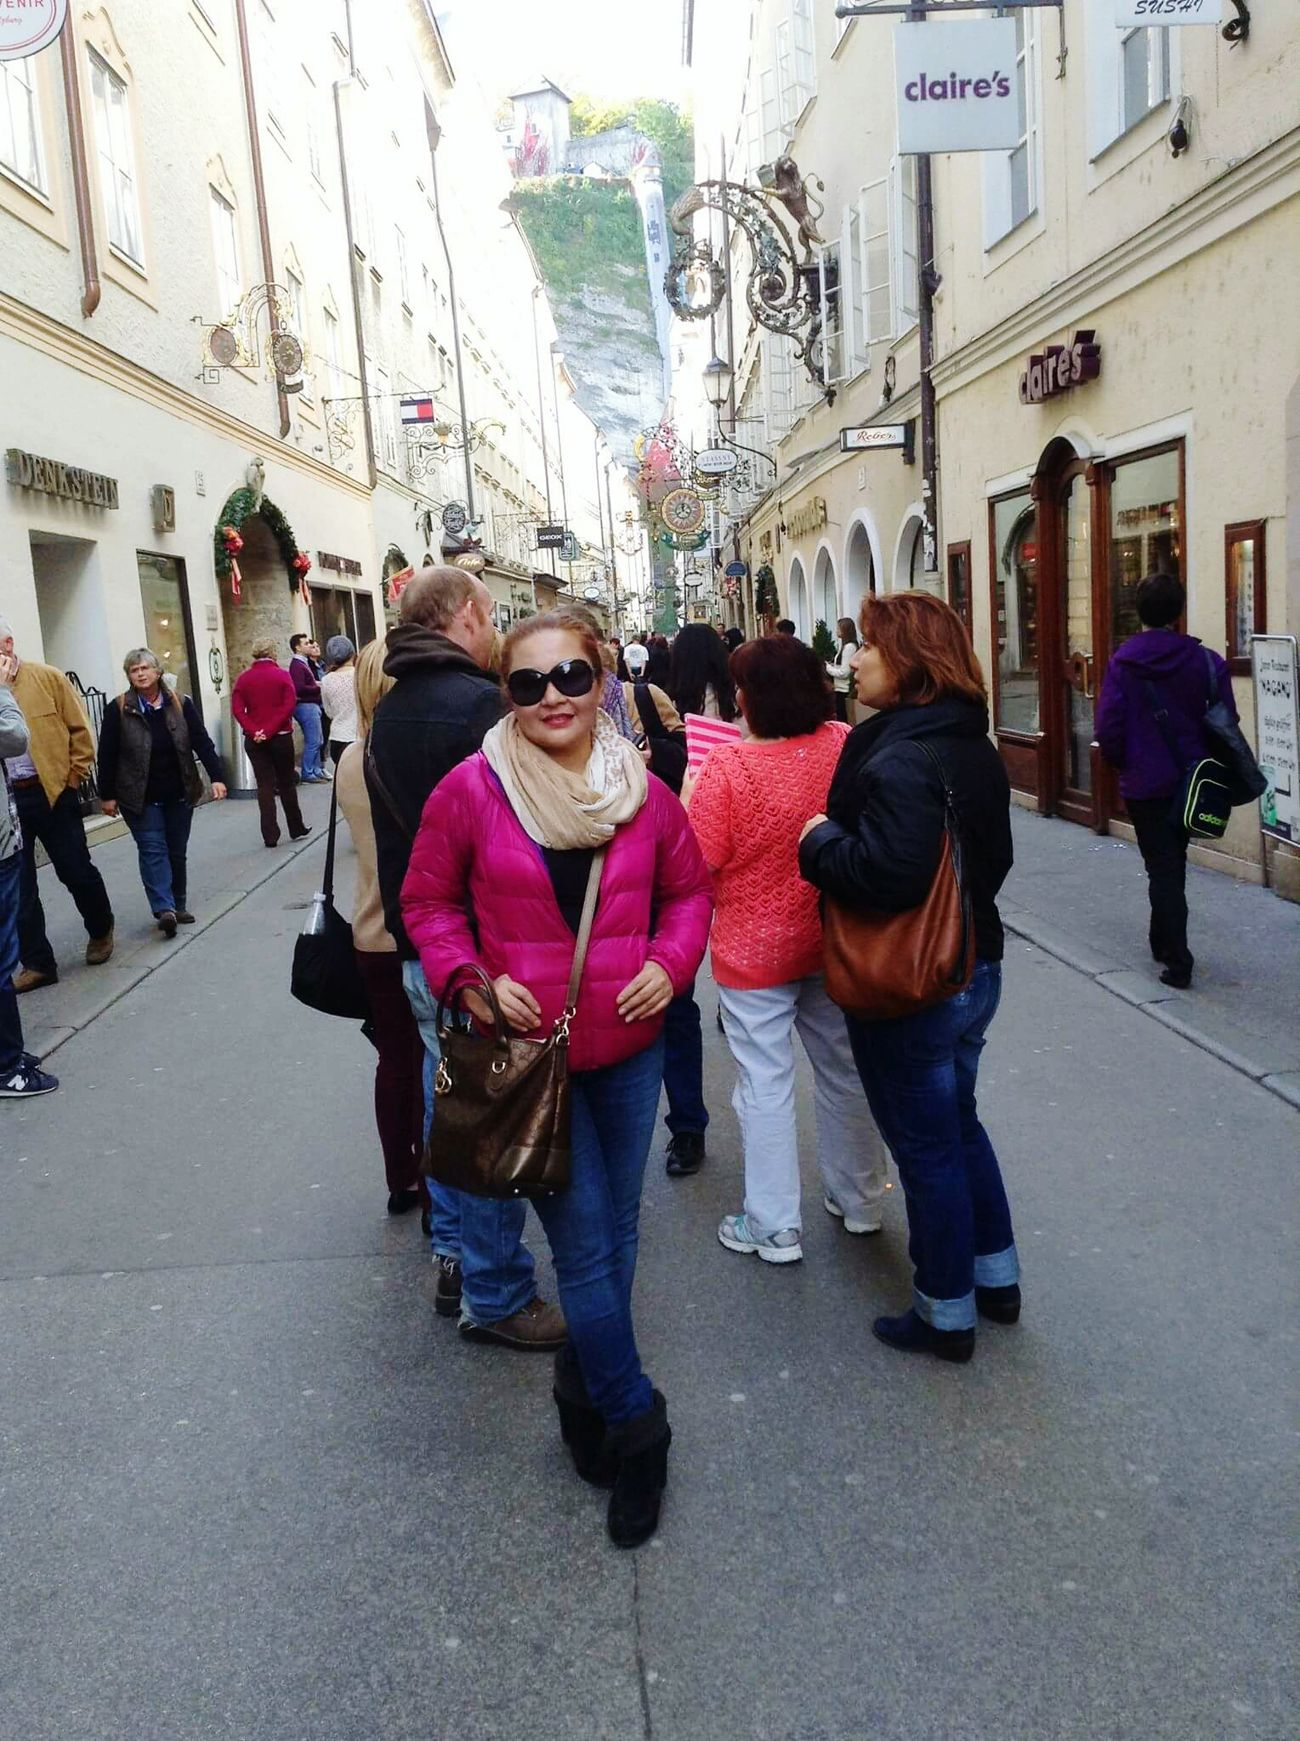 Salzburg Oldtown MozartGeburthaus The Sound Of Music Beautiful Place 😍❤️ Streetphotography Going Places. Enjoying Life People Watching For My Own Photo Journal Solotraveler Travelingtheworld  Discovering Places Austria Great Adventures That's Me Seeking Inspiration